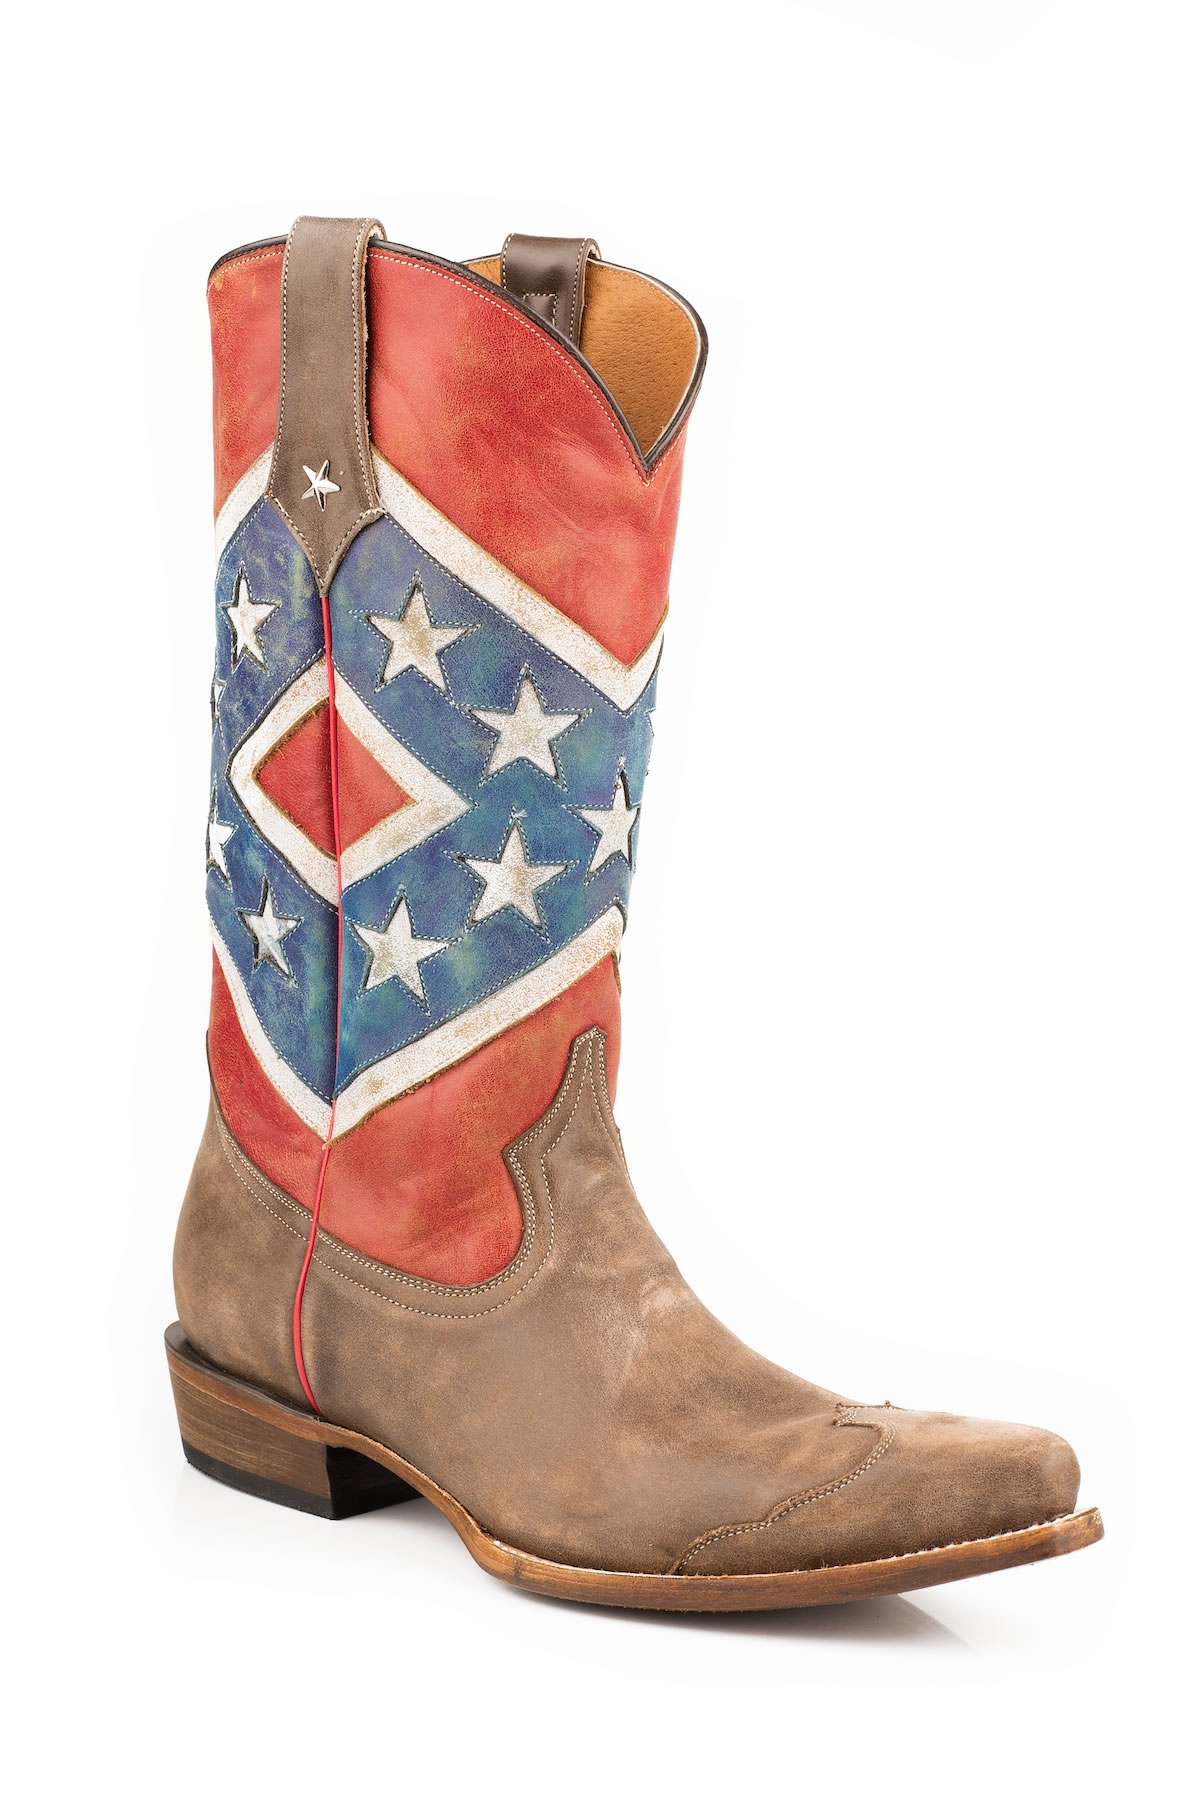 Pungo Ridge Roper Mens Distressed Rebel Flag Snip Toe